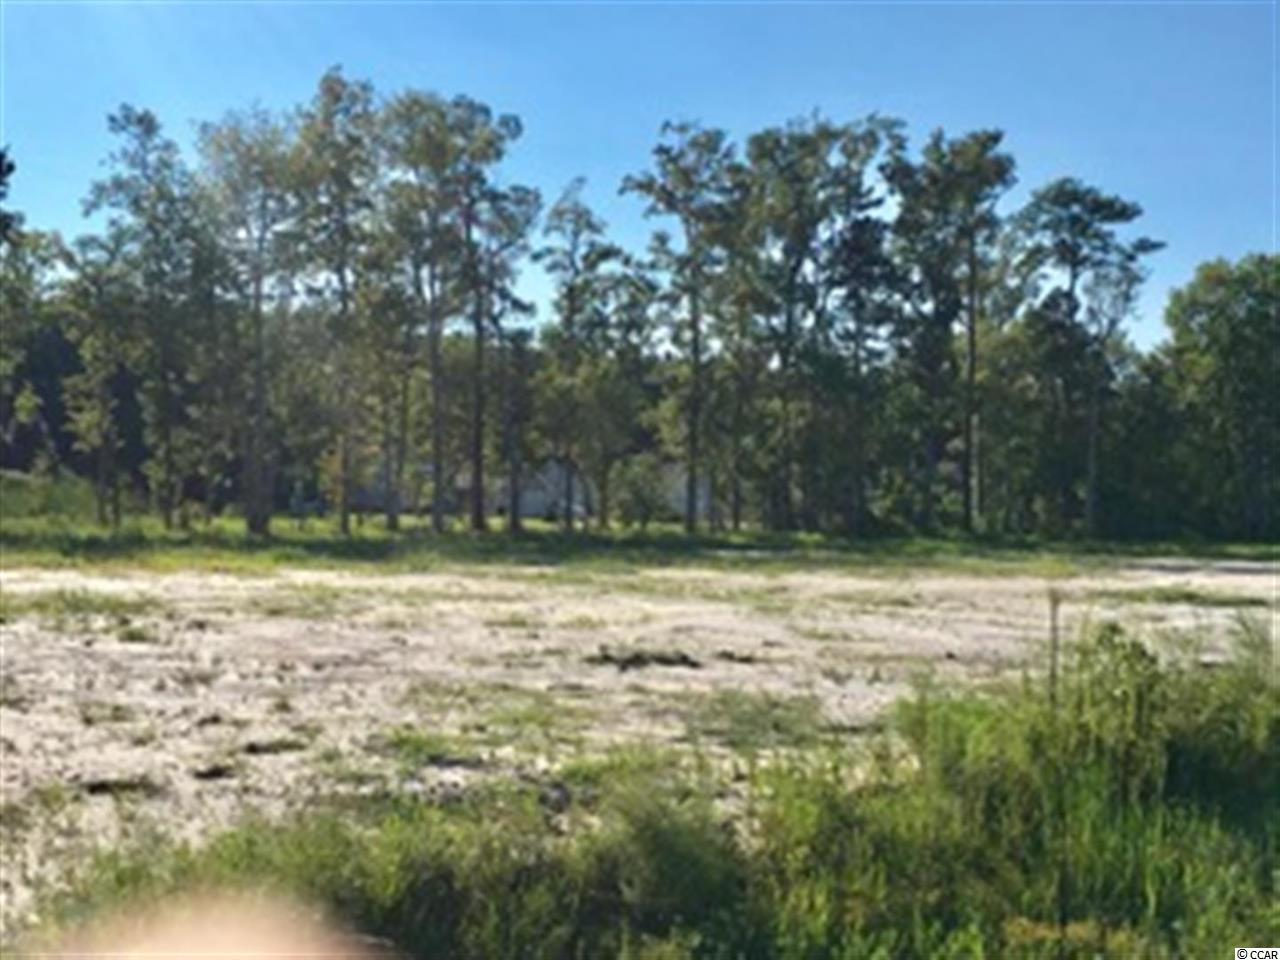 1/2 acre already cleared in highly desirable area of Little River with no hoa.  No timeframe to build.  Just minutes to the beach and all area attractions with easy access to area highways.  This lot already has the driveway started.   Several lots for sale can be purchased together as a package.  Schedule your showing now.